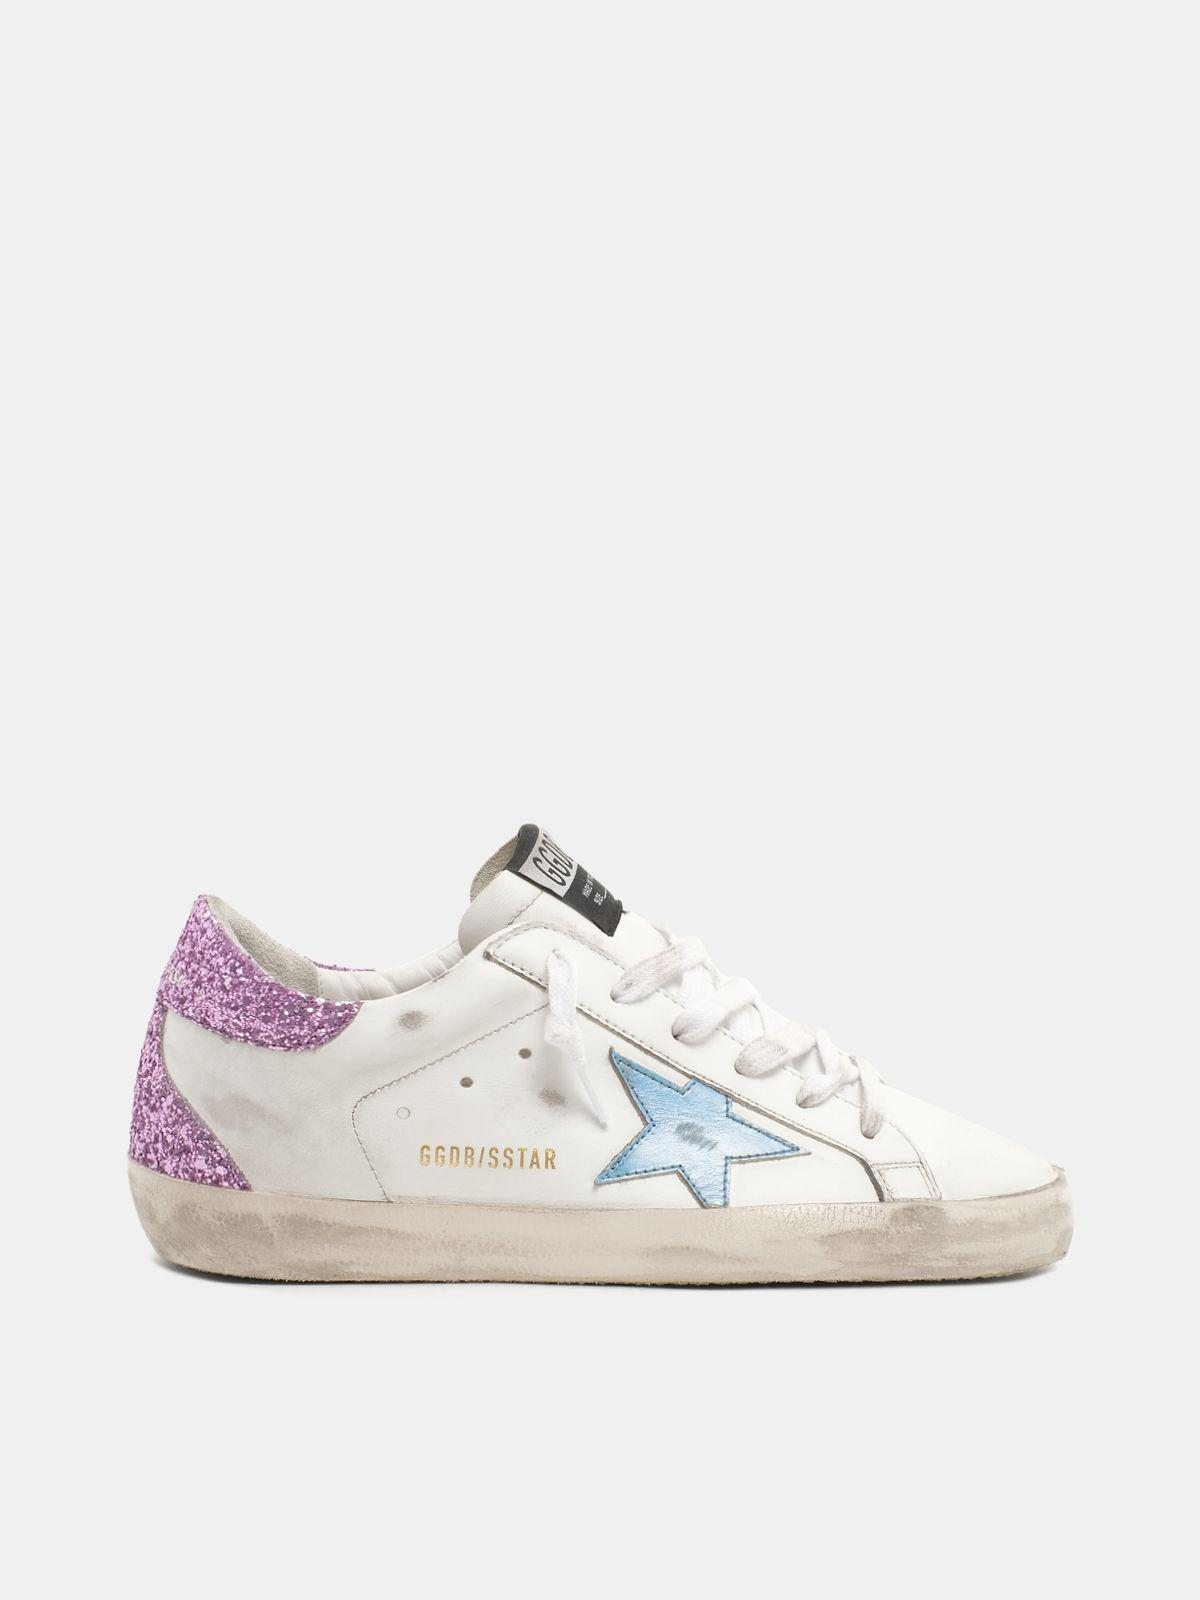 Super-Star sneakers with lavender glitter heel tab and light-blue metallic leather star